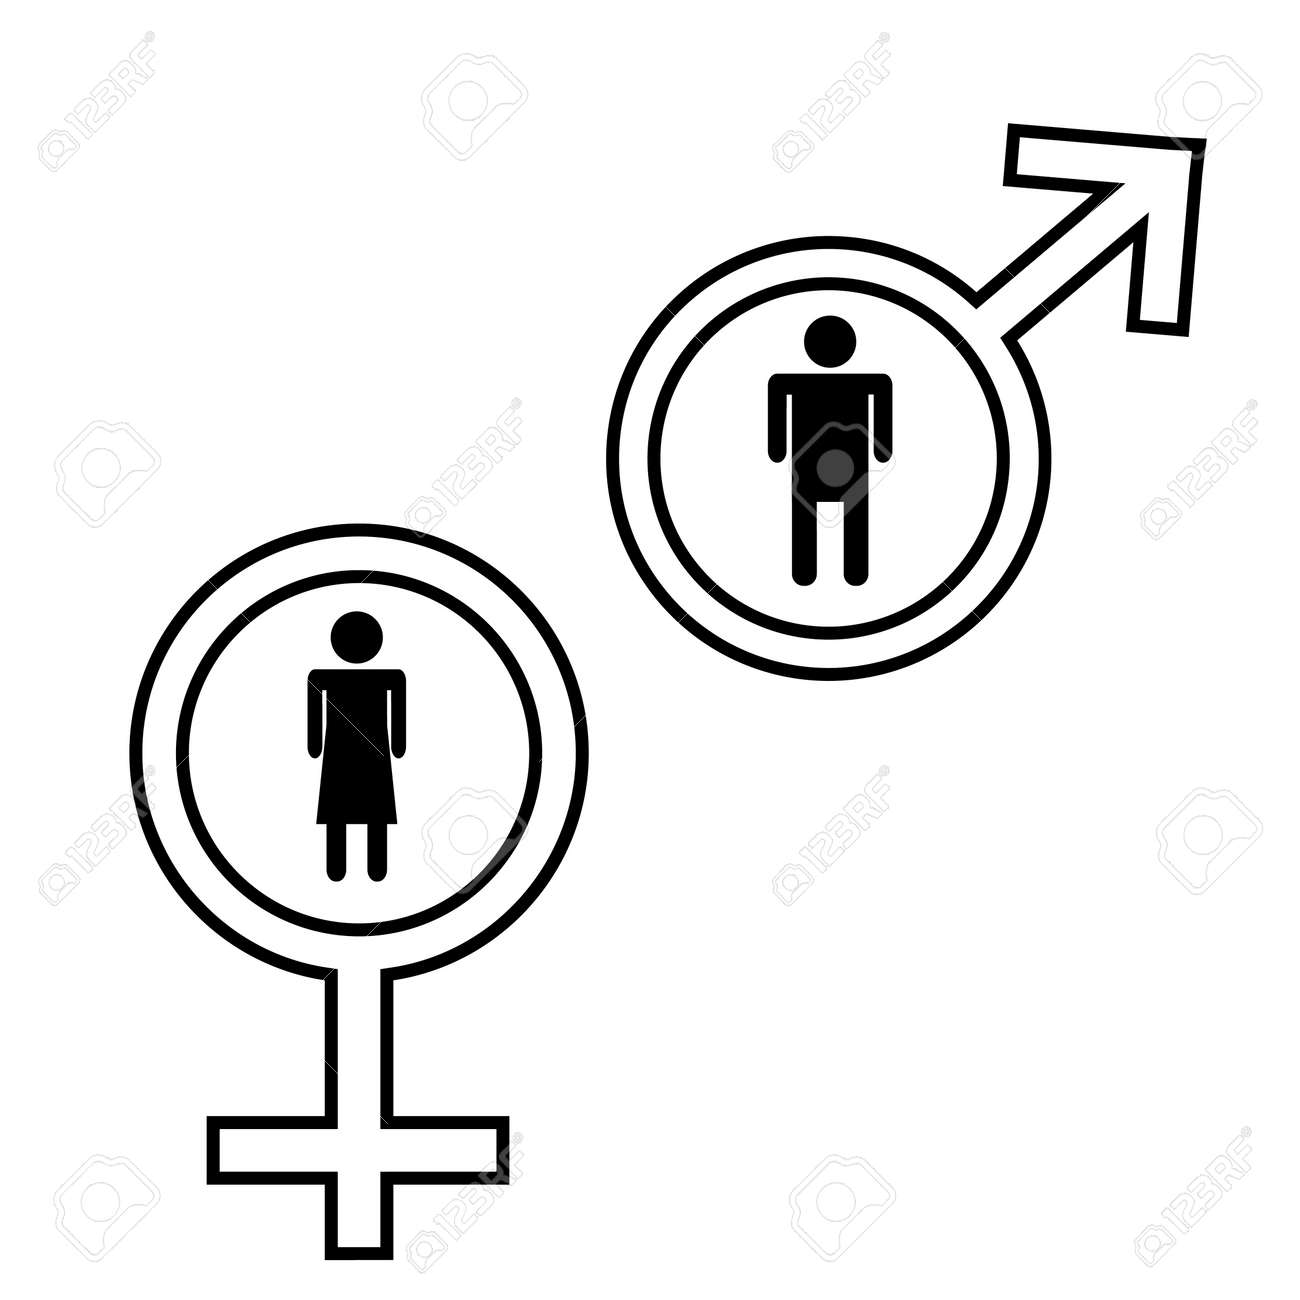 Male And Female Signs Isolated On White Background Royalty Free ...